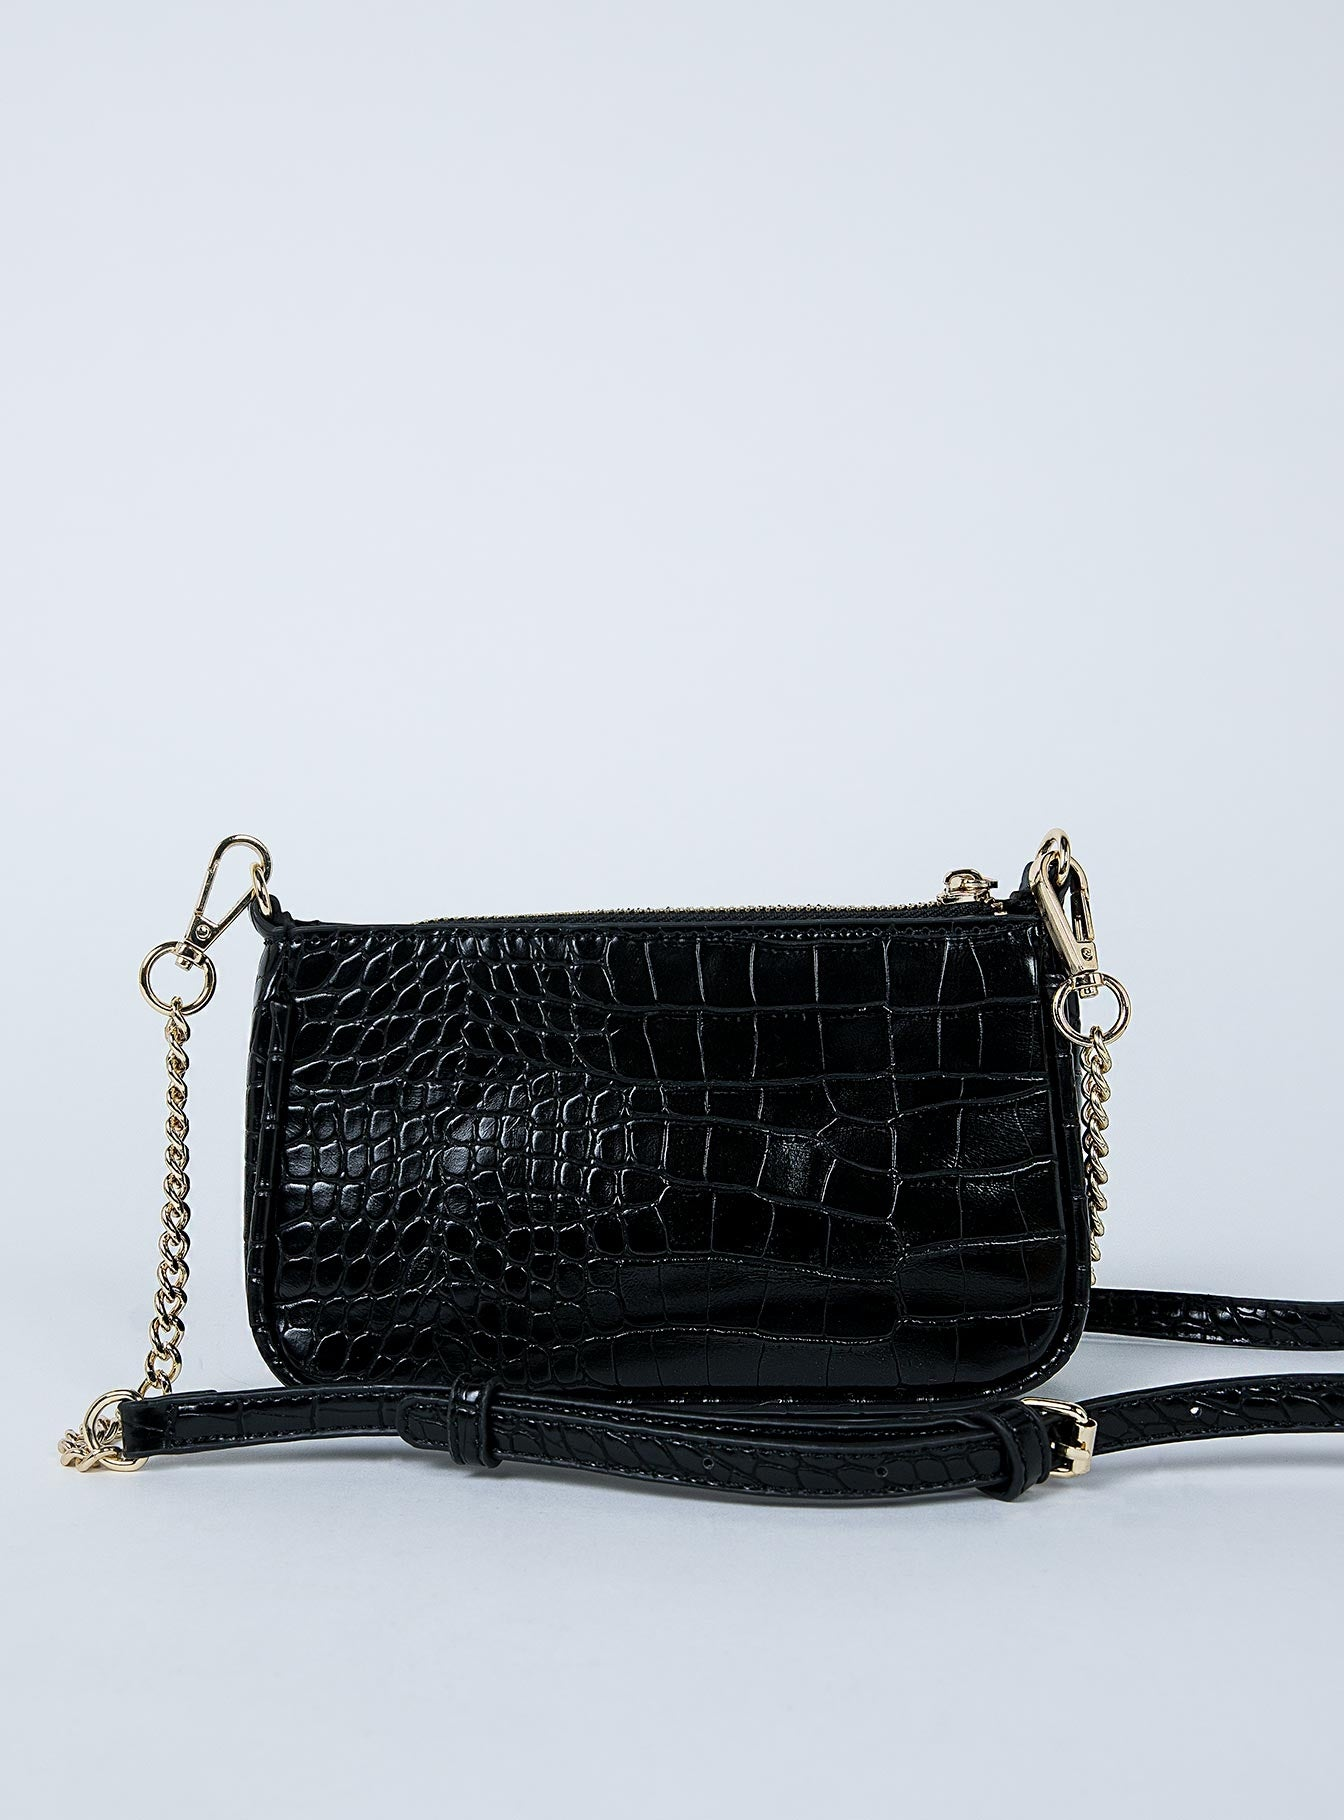 Peta & Jain Madrid Bag Black Croc